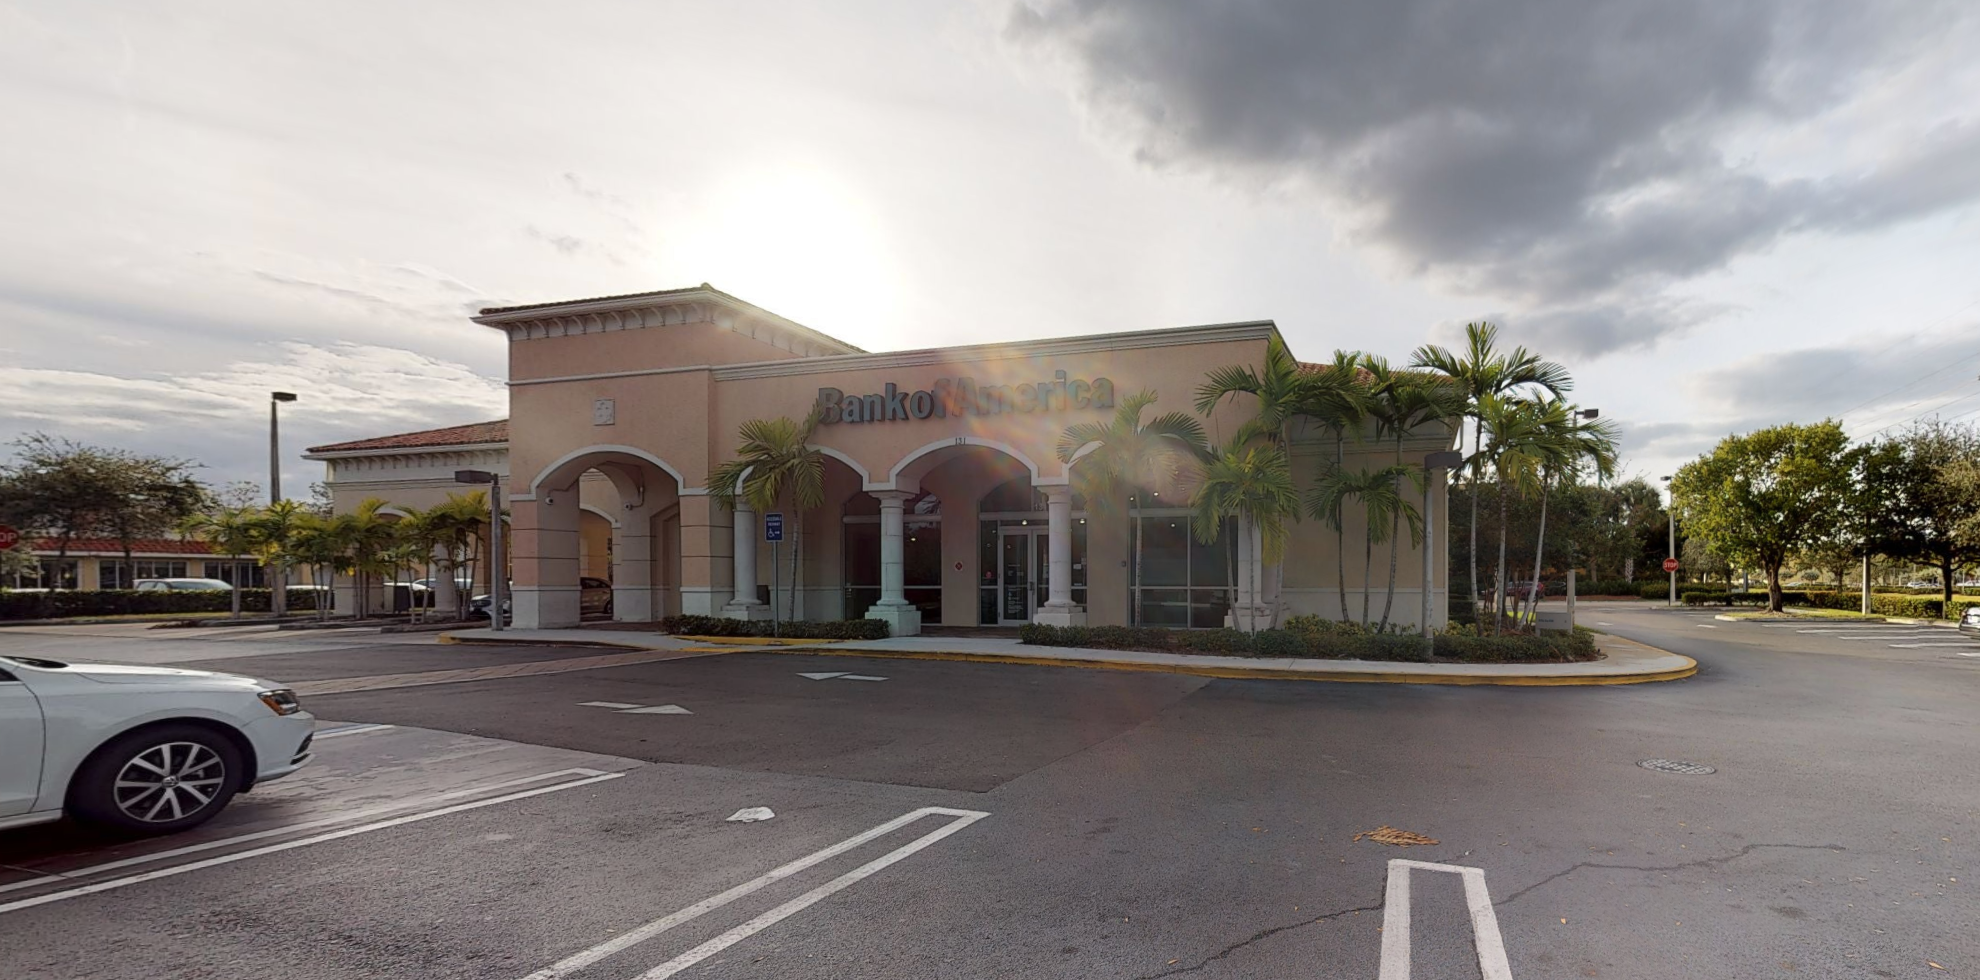 Bank of America financial center with drive-thru ATM | 131 S State Road 7, Wellington, FL 33414